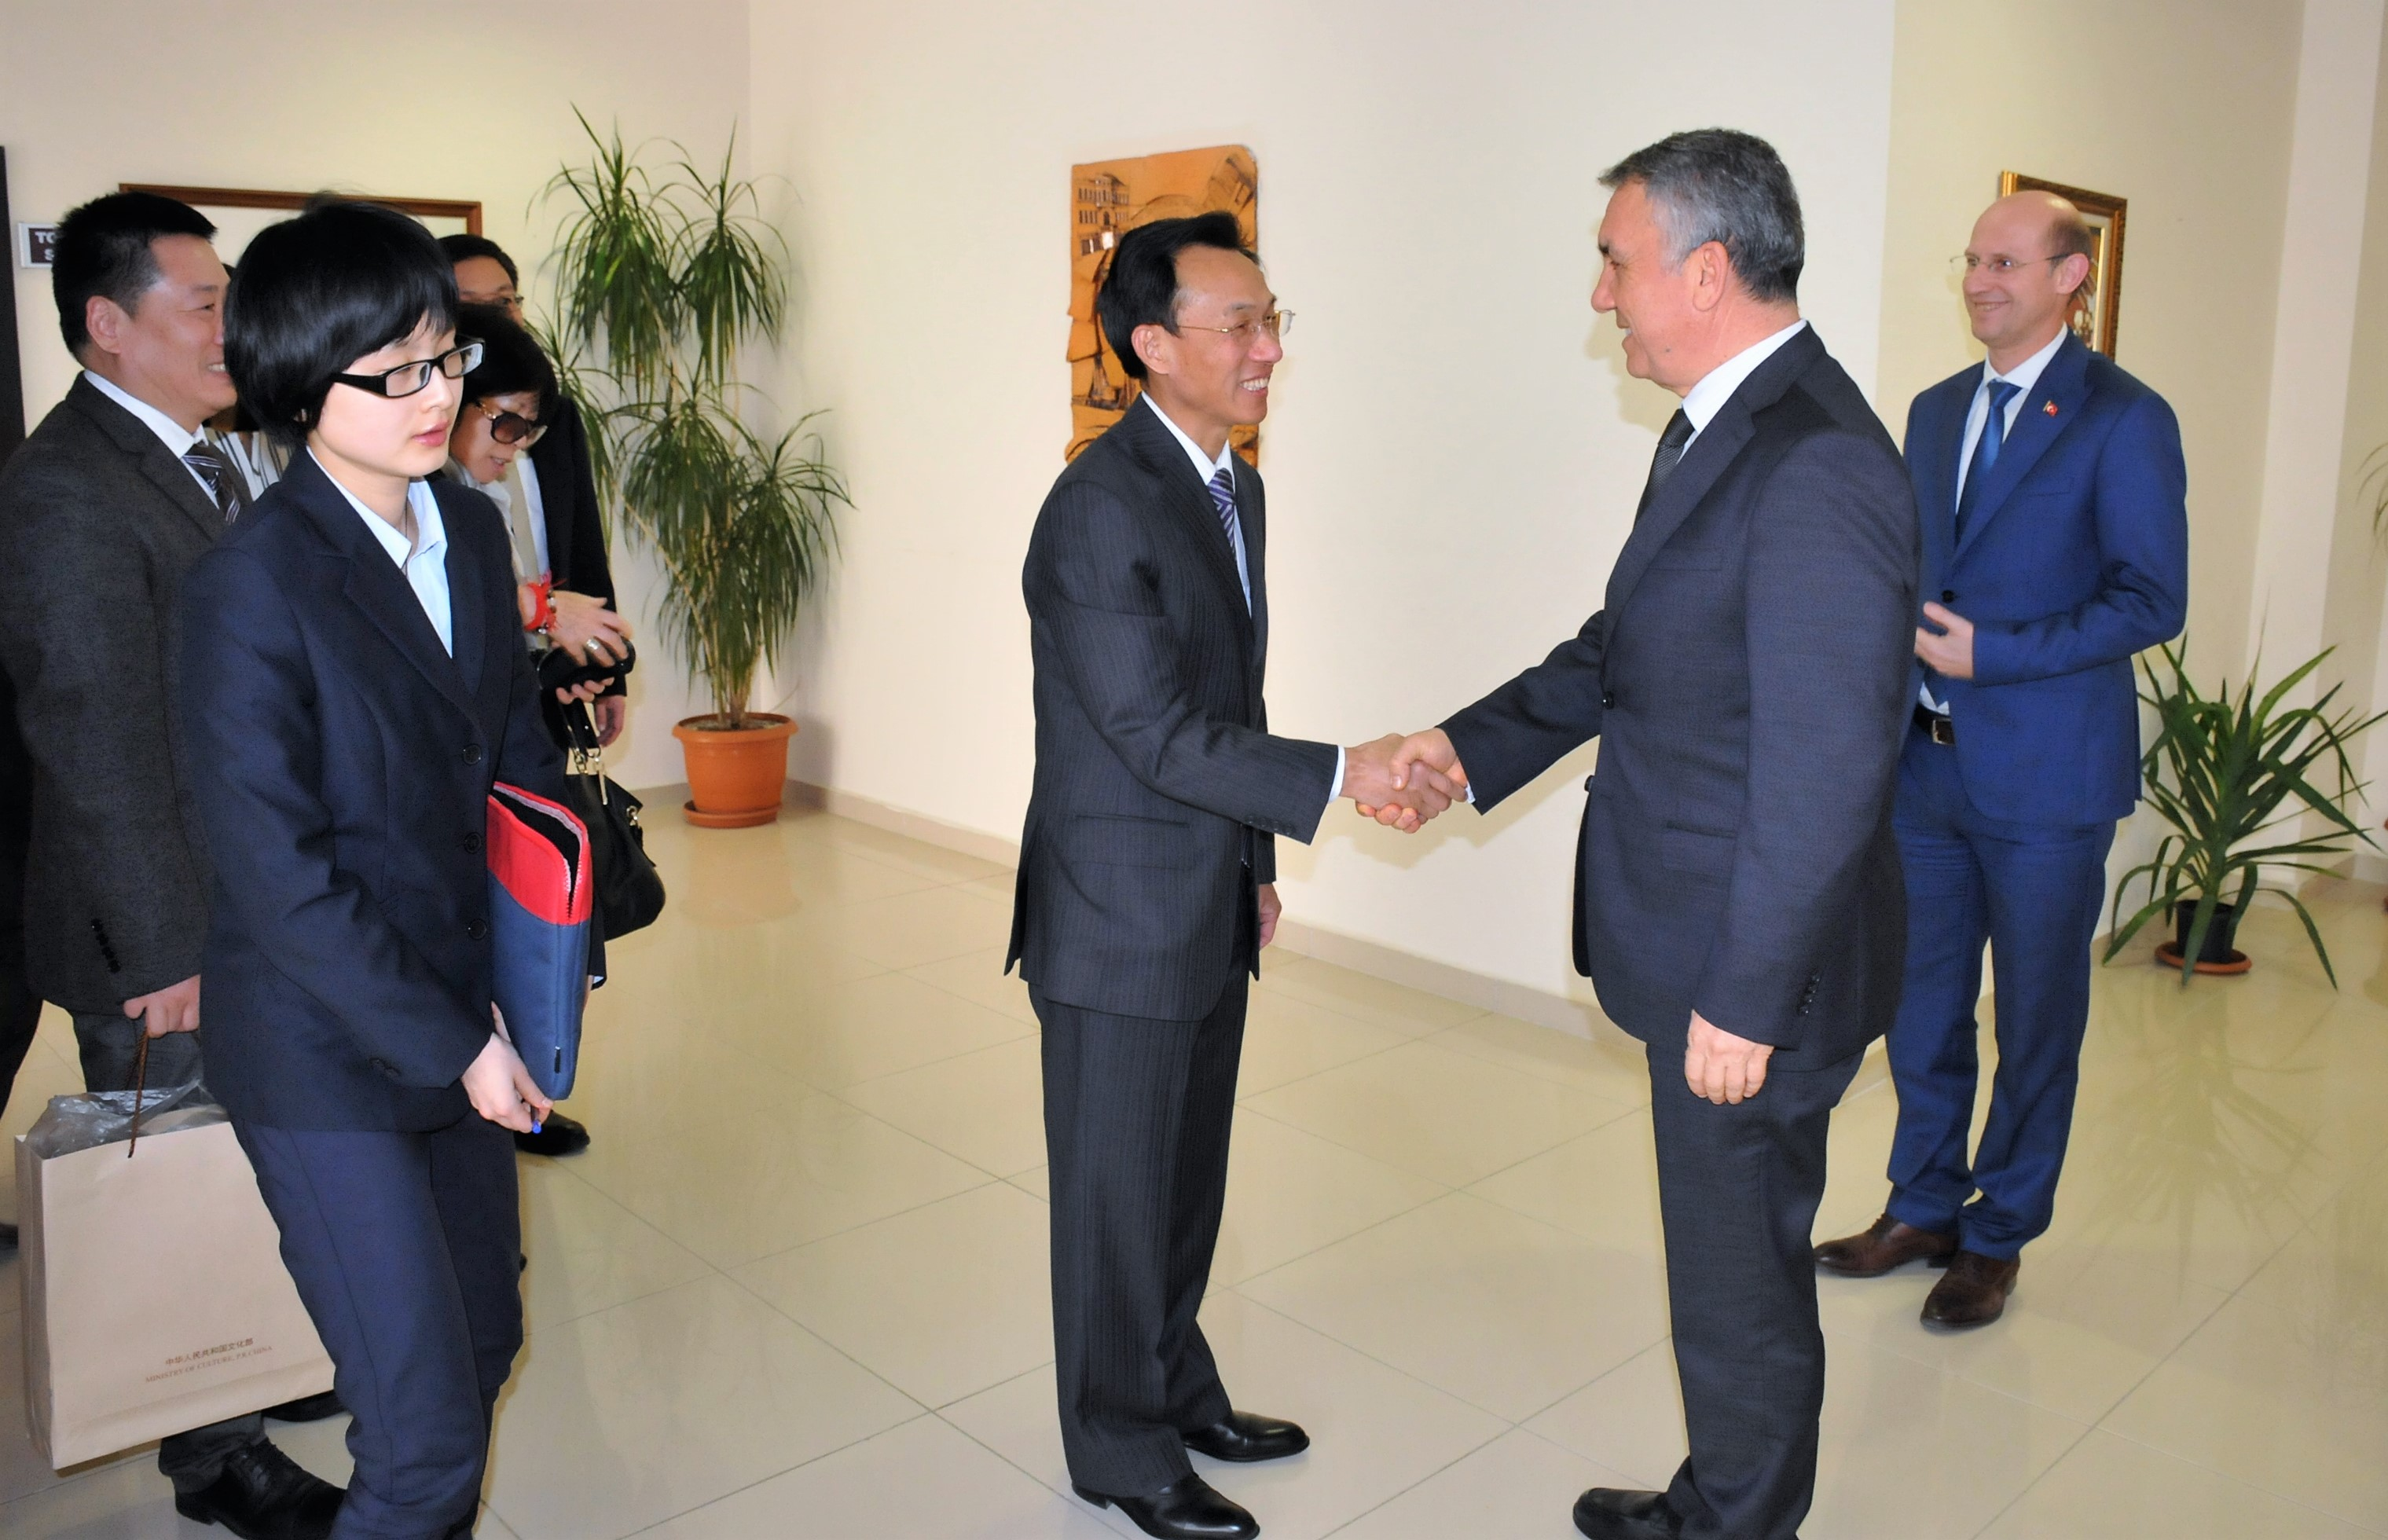 http://www.omu.edu.tr/sites/default/files/files/ambassador_of_the_peoples_republic_of_china_visits_rector_bilgic/dsc_0004.jpg